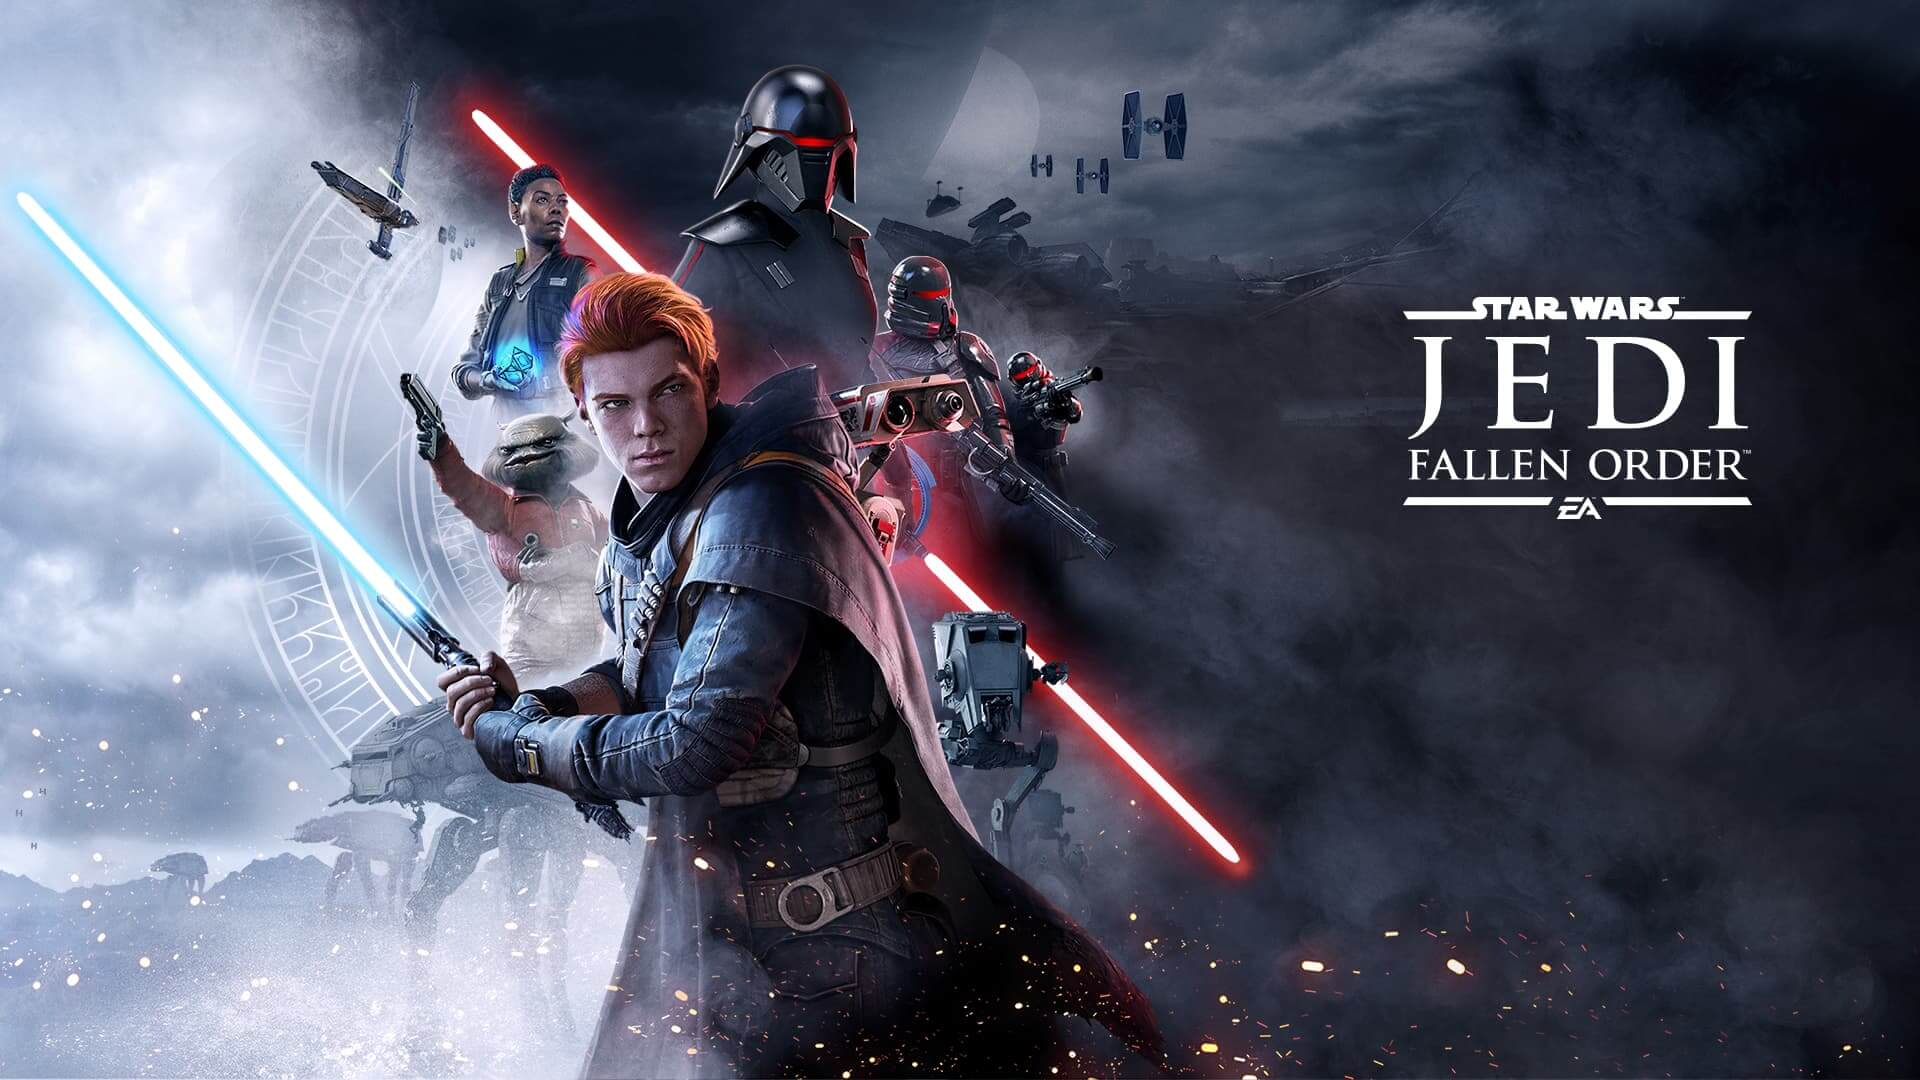 Caption: A promotional image for Star Wars Jedi: Fallen Order, a game scored by Stephen Barton and Gordy Haab.